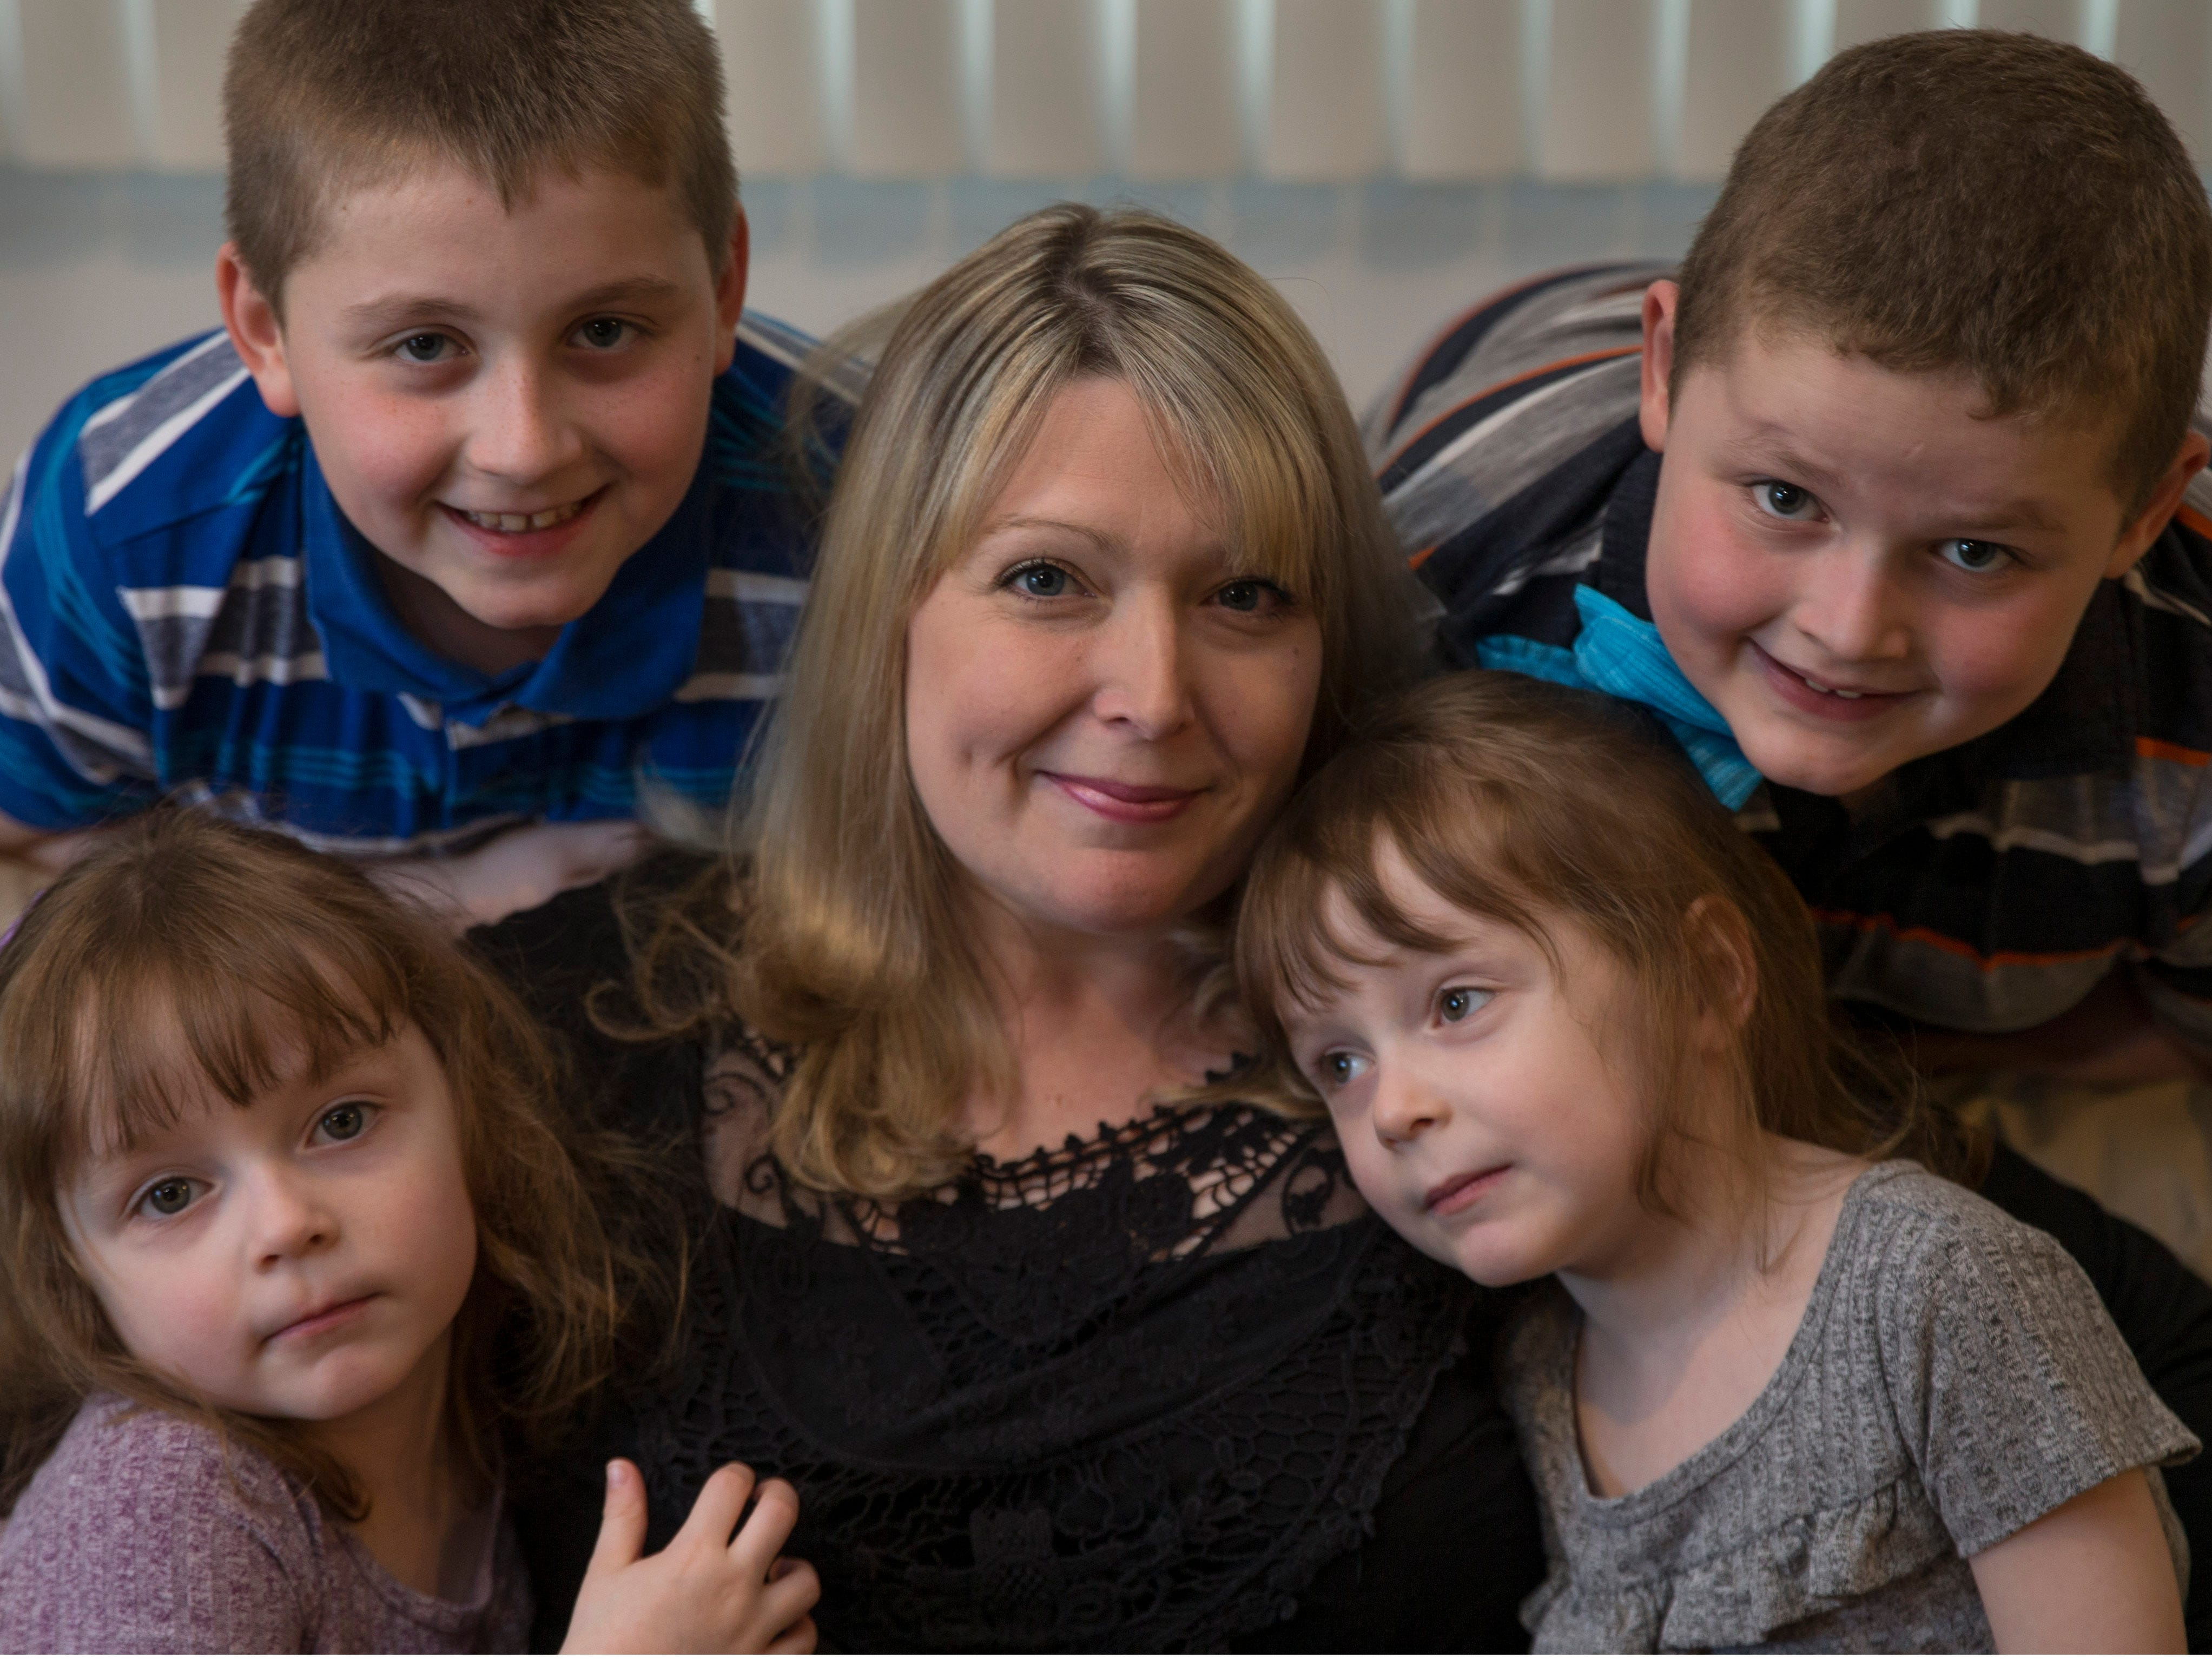 Amie Cottrell surrounded by her four children, clockwise from top left, Nicholas, 9, Michael, 7, Katelyn, 4, and Alyssa, 4. Jackson native Amie Cottrell is a 39-year-old mother of four young children that is battling Stage 4 breast cancer. She shares her story about managing motherhood despite the advanced cancer. Jackson, NJTuesday, May 7, 2019